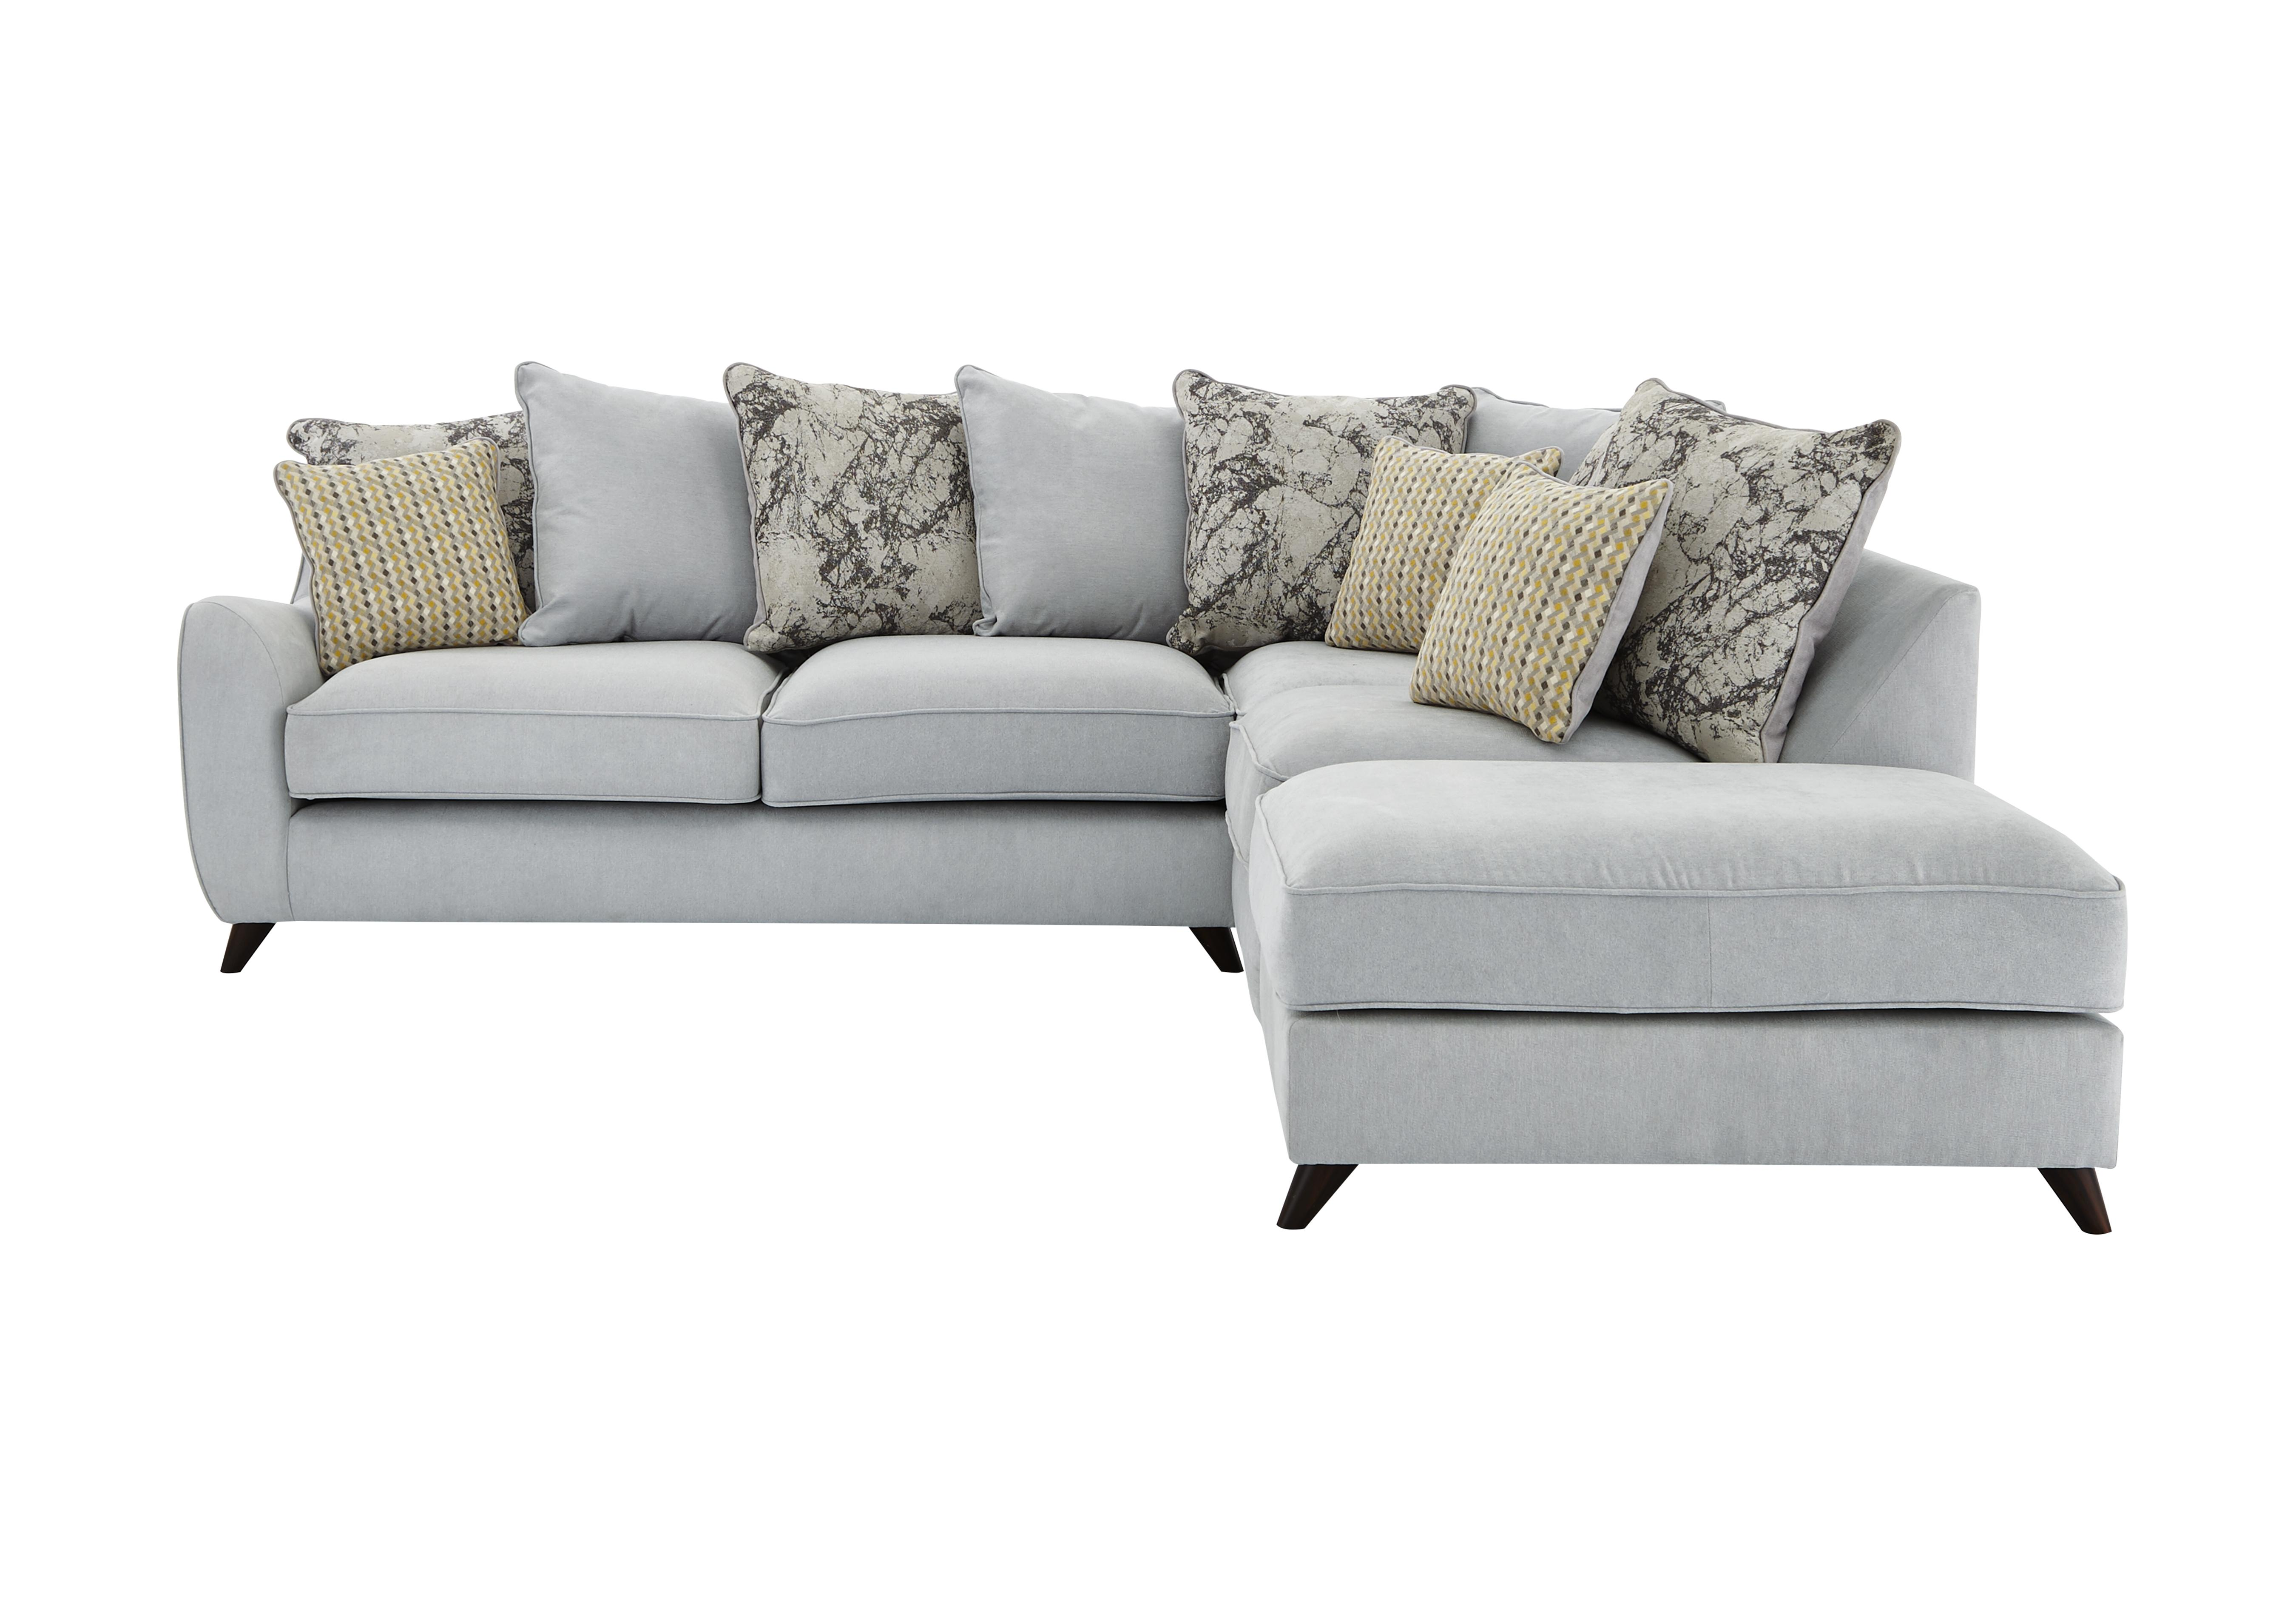 FREE Pair Of Scatter Cushions